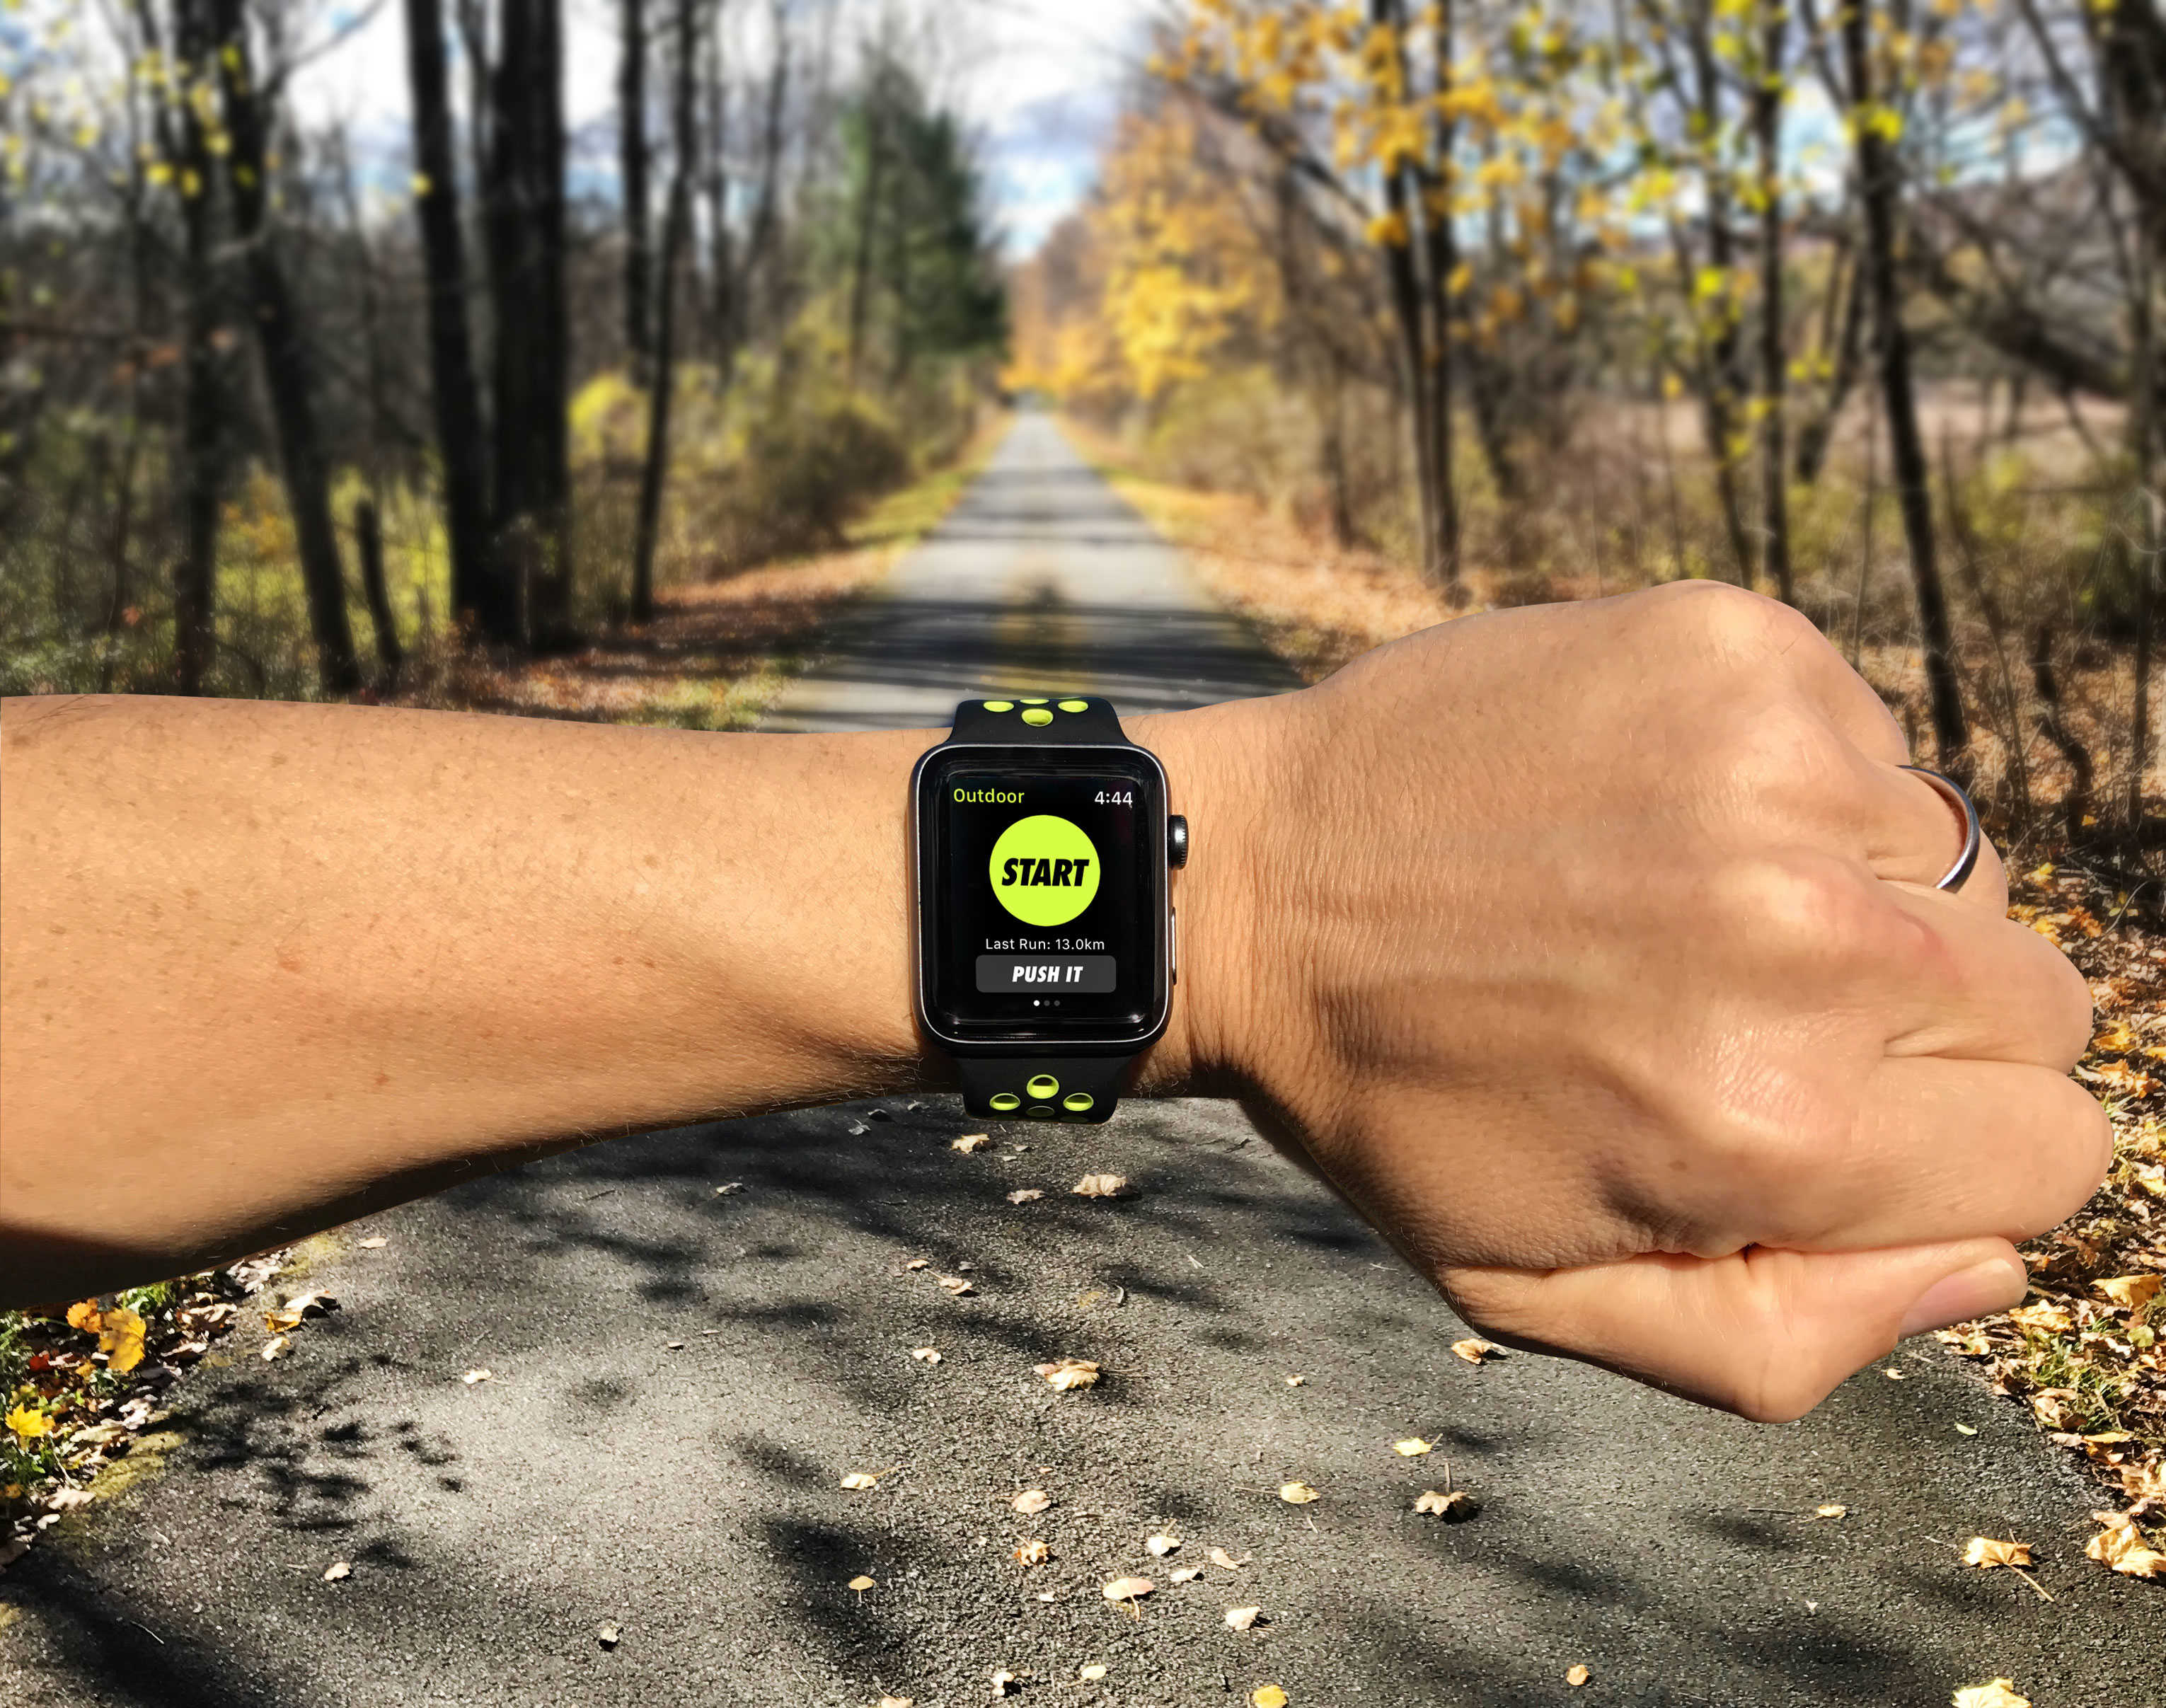 Is Apple Watch Series 2 the perfect running partner?